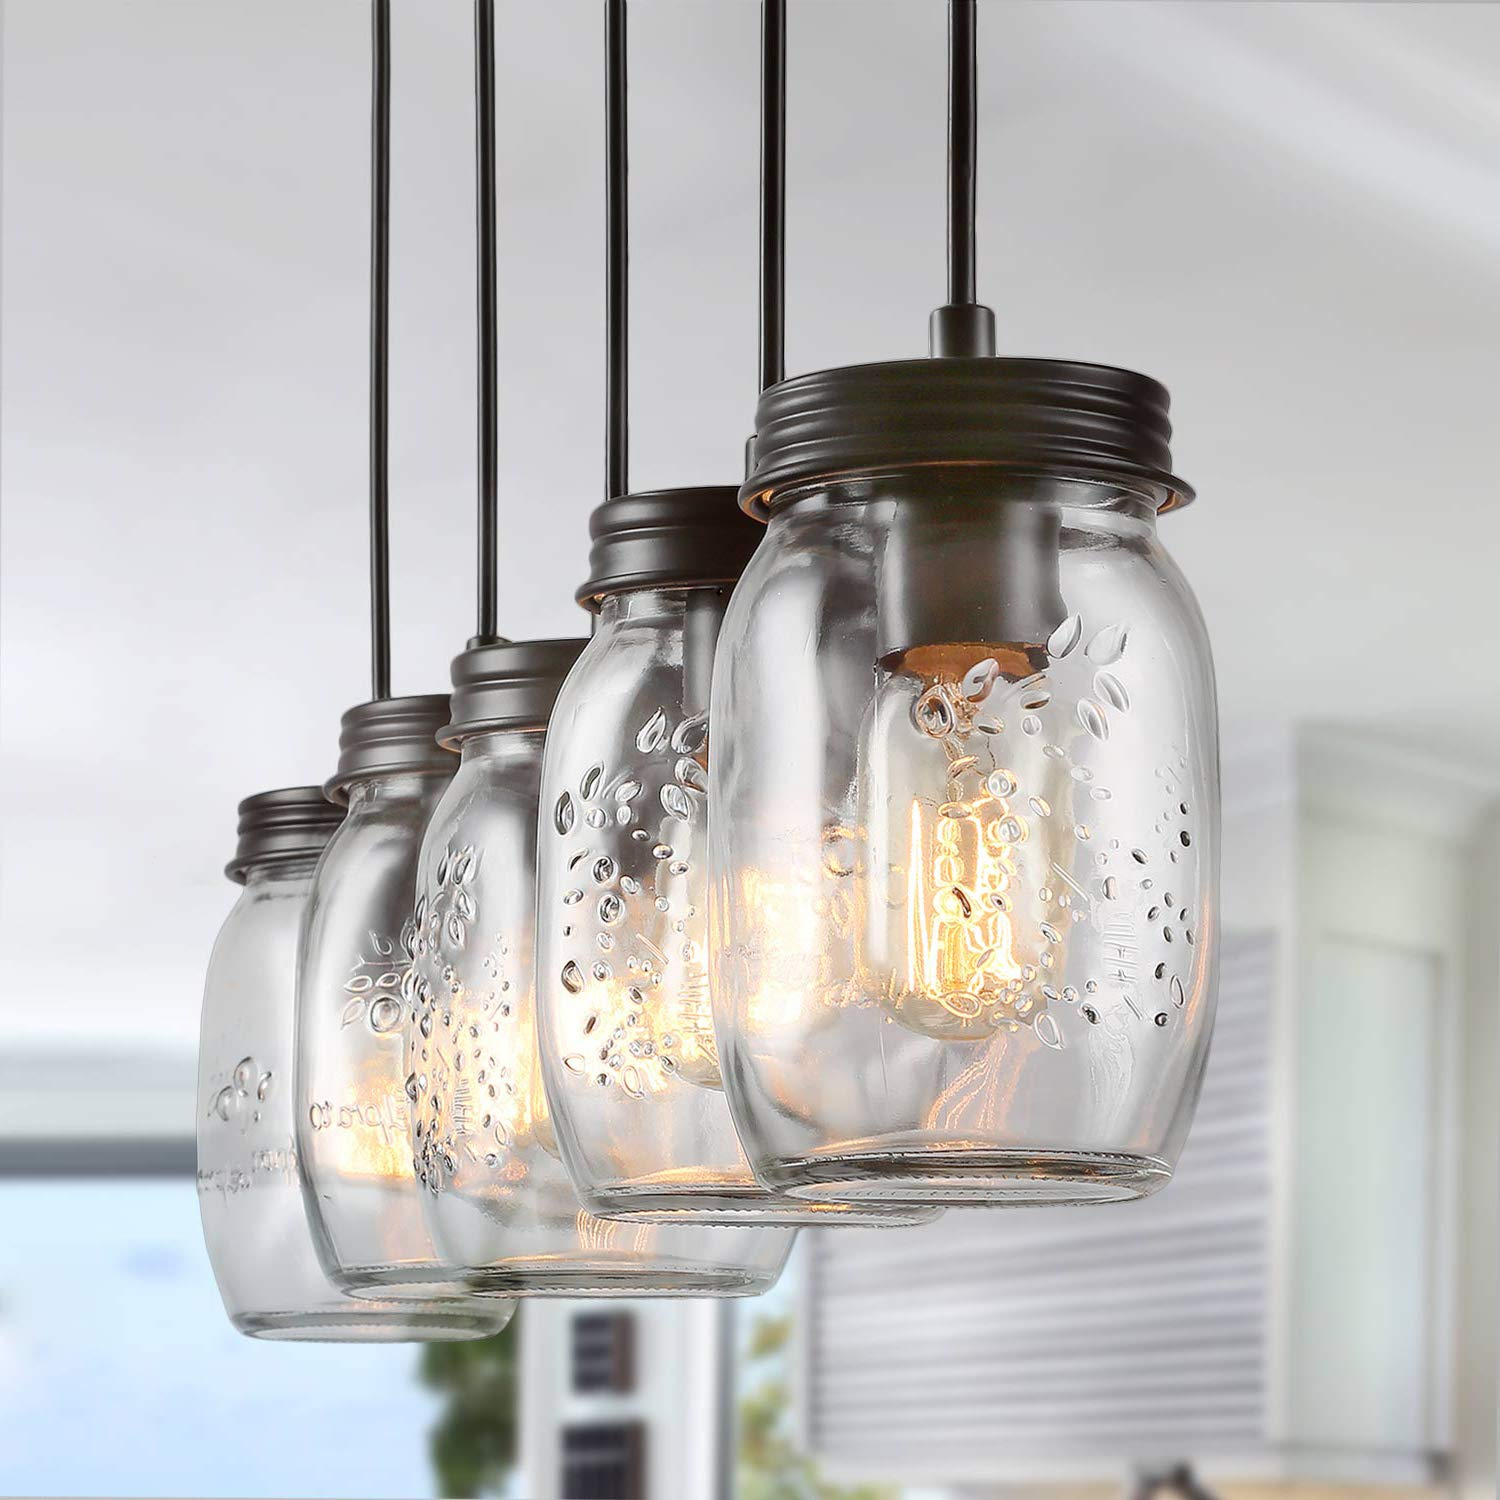 Kitchen Pendant Light Fixture Hanging Mason Jar Wooden